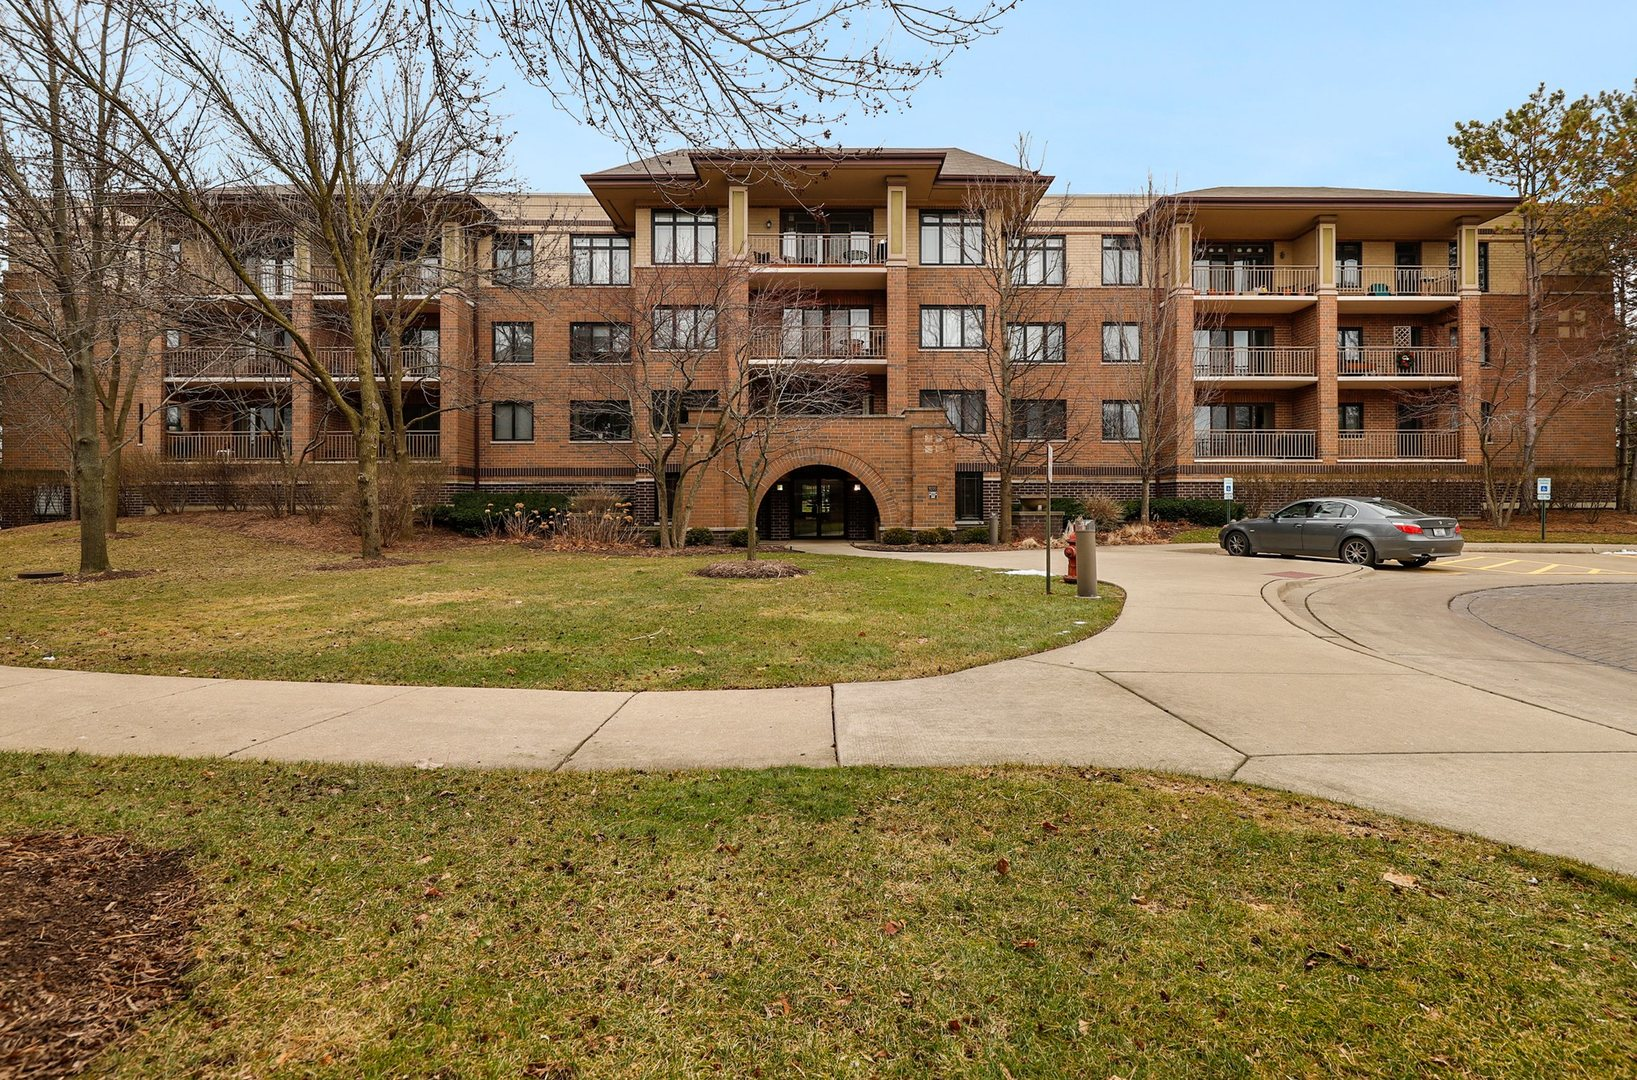 9200 East Prairie Road, Evanston, Illinois